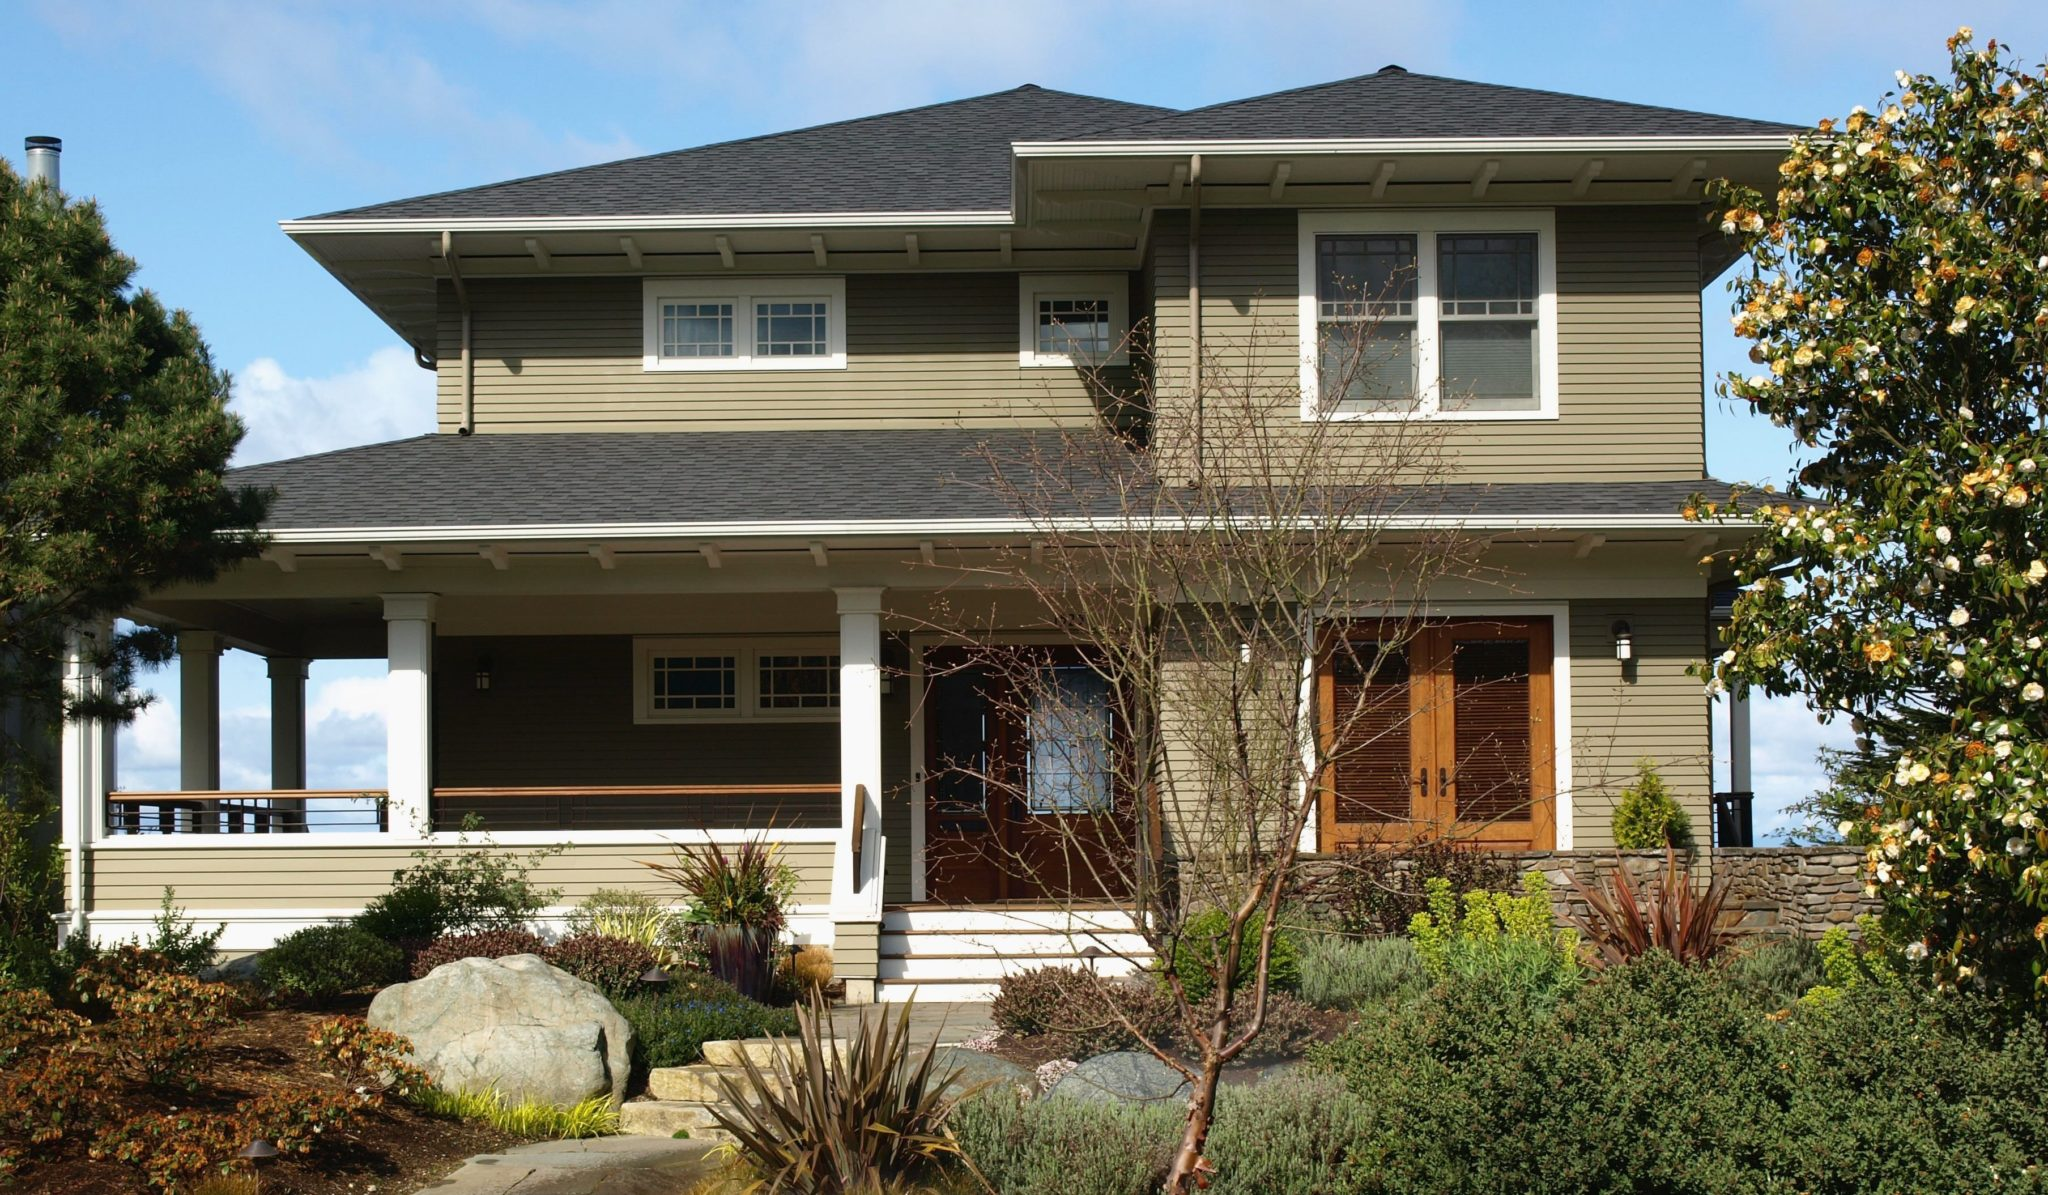 Traditional New House - Seattle Architects - CTA Design Builders - Transitional, New Home